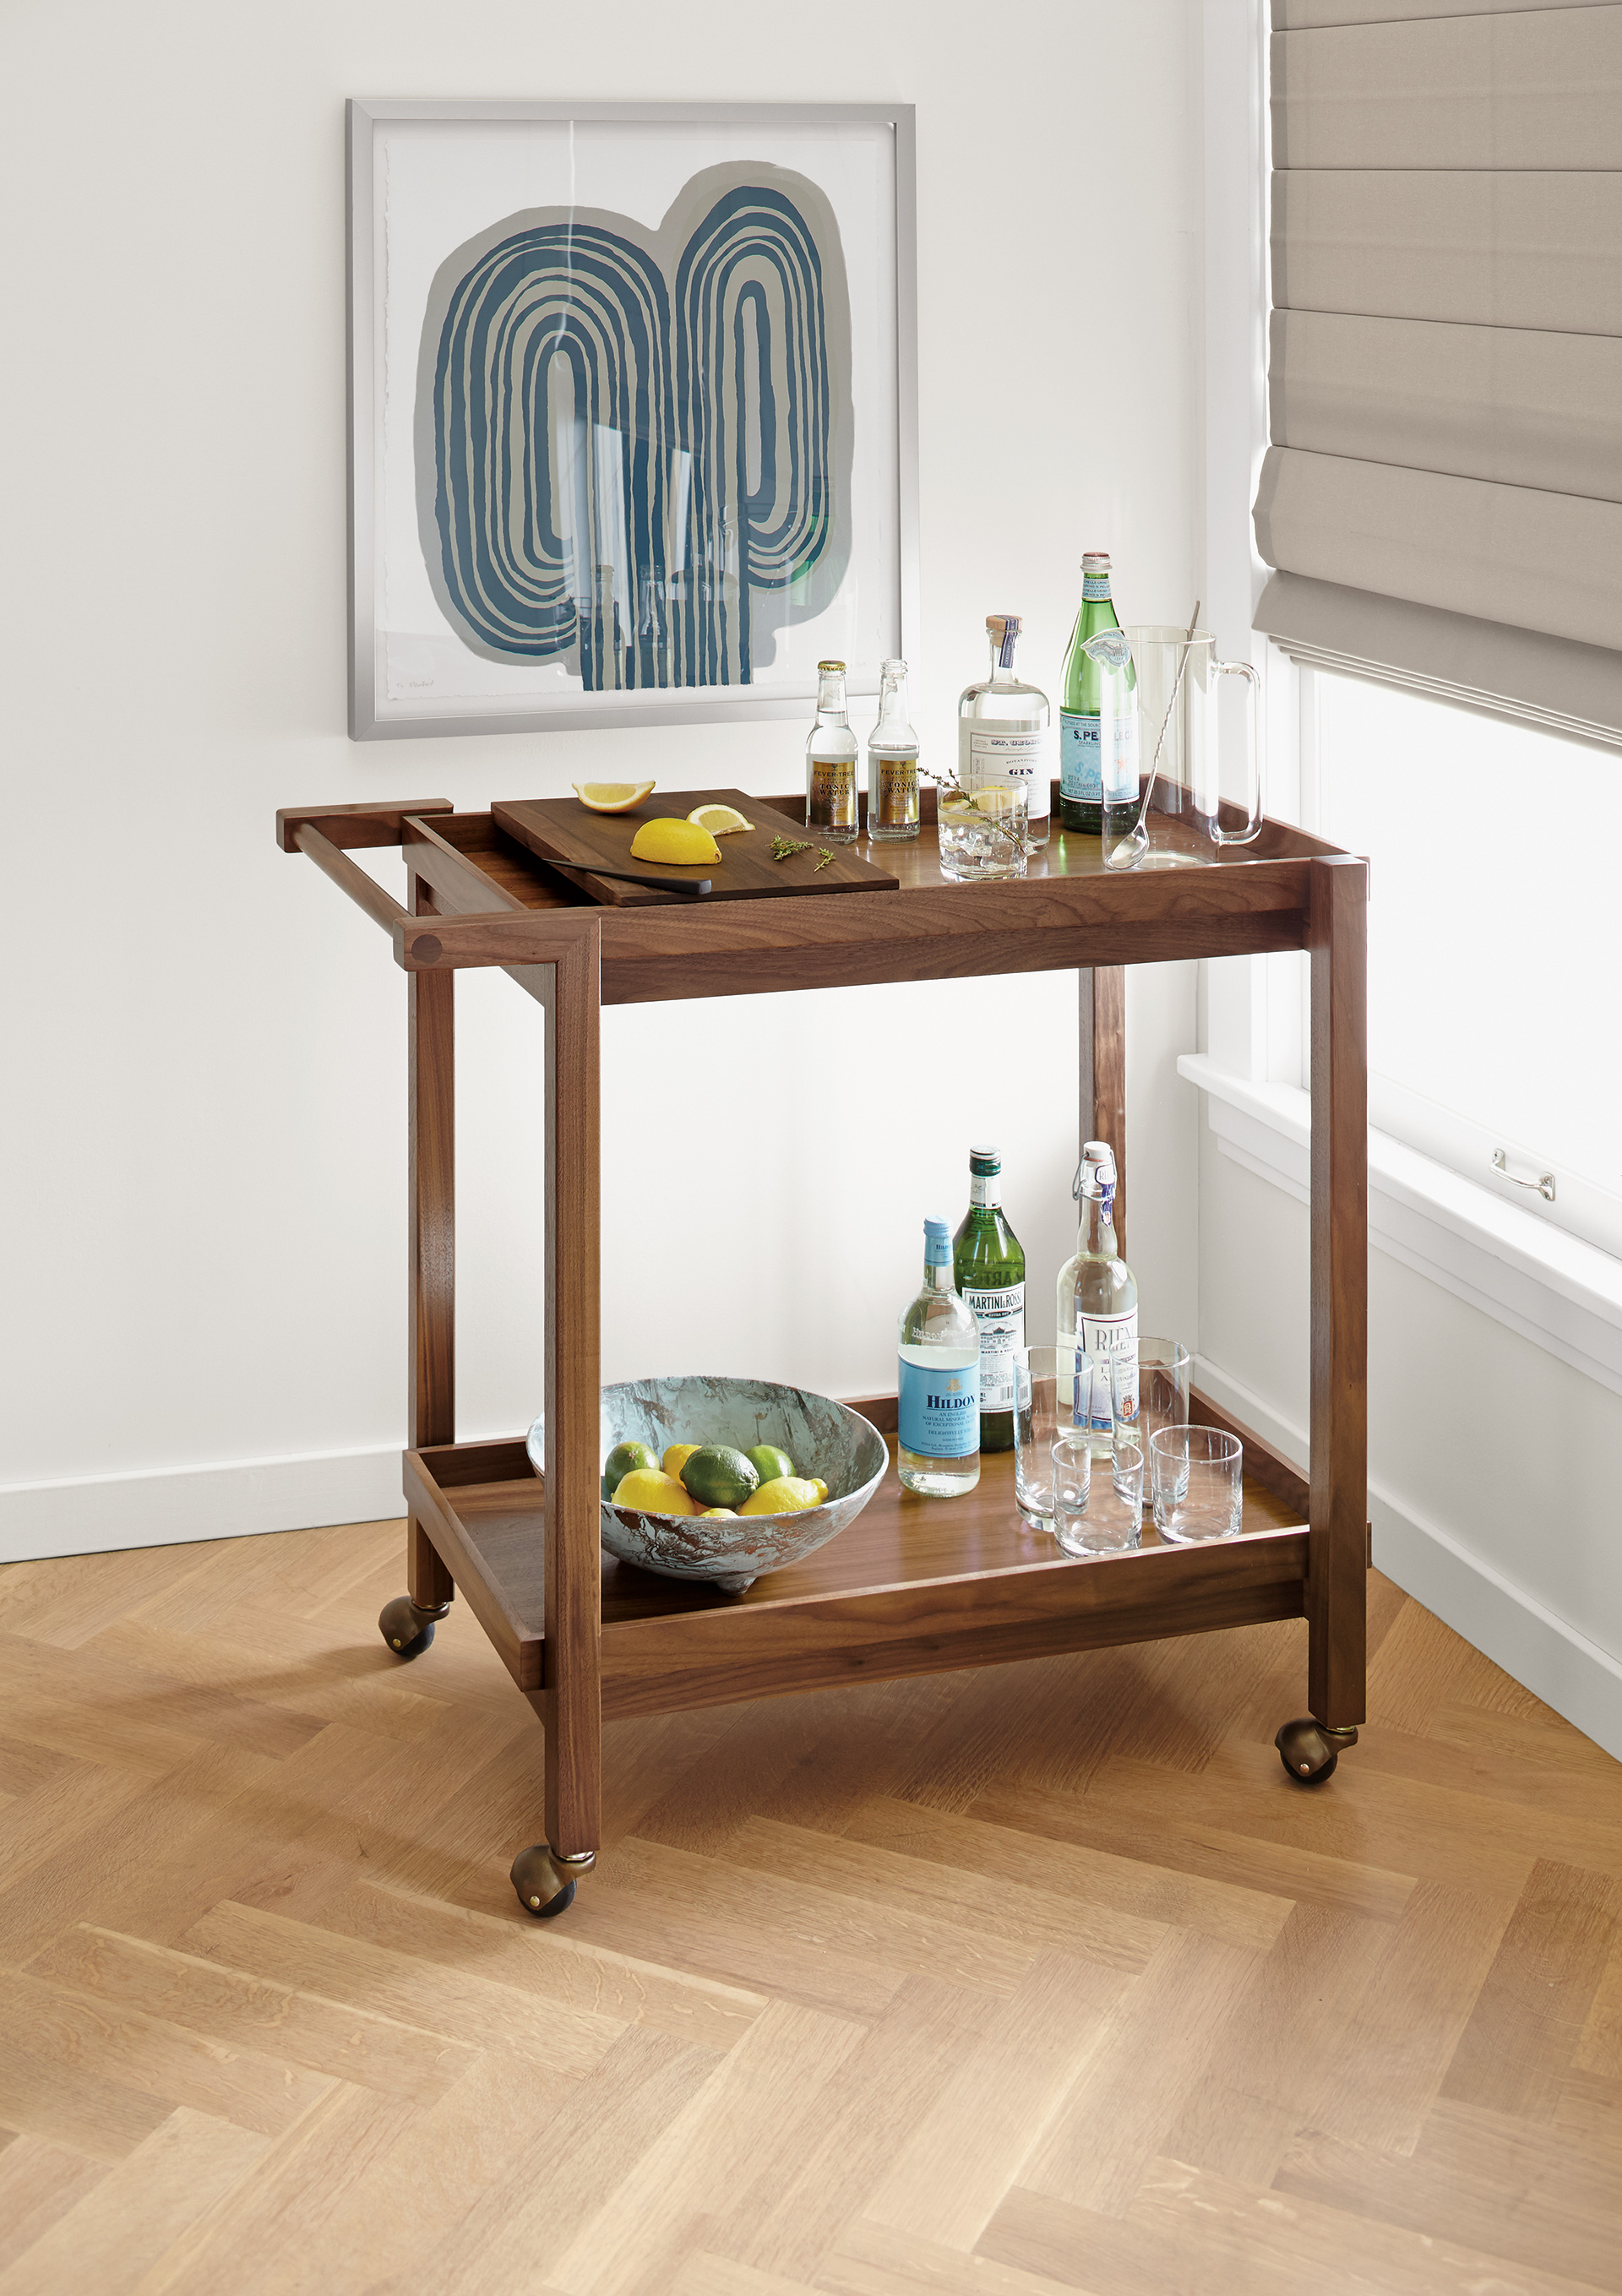 Breck bar cart with Wall art